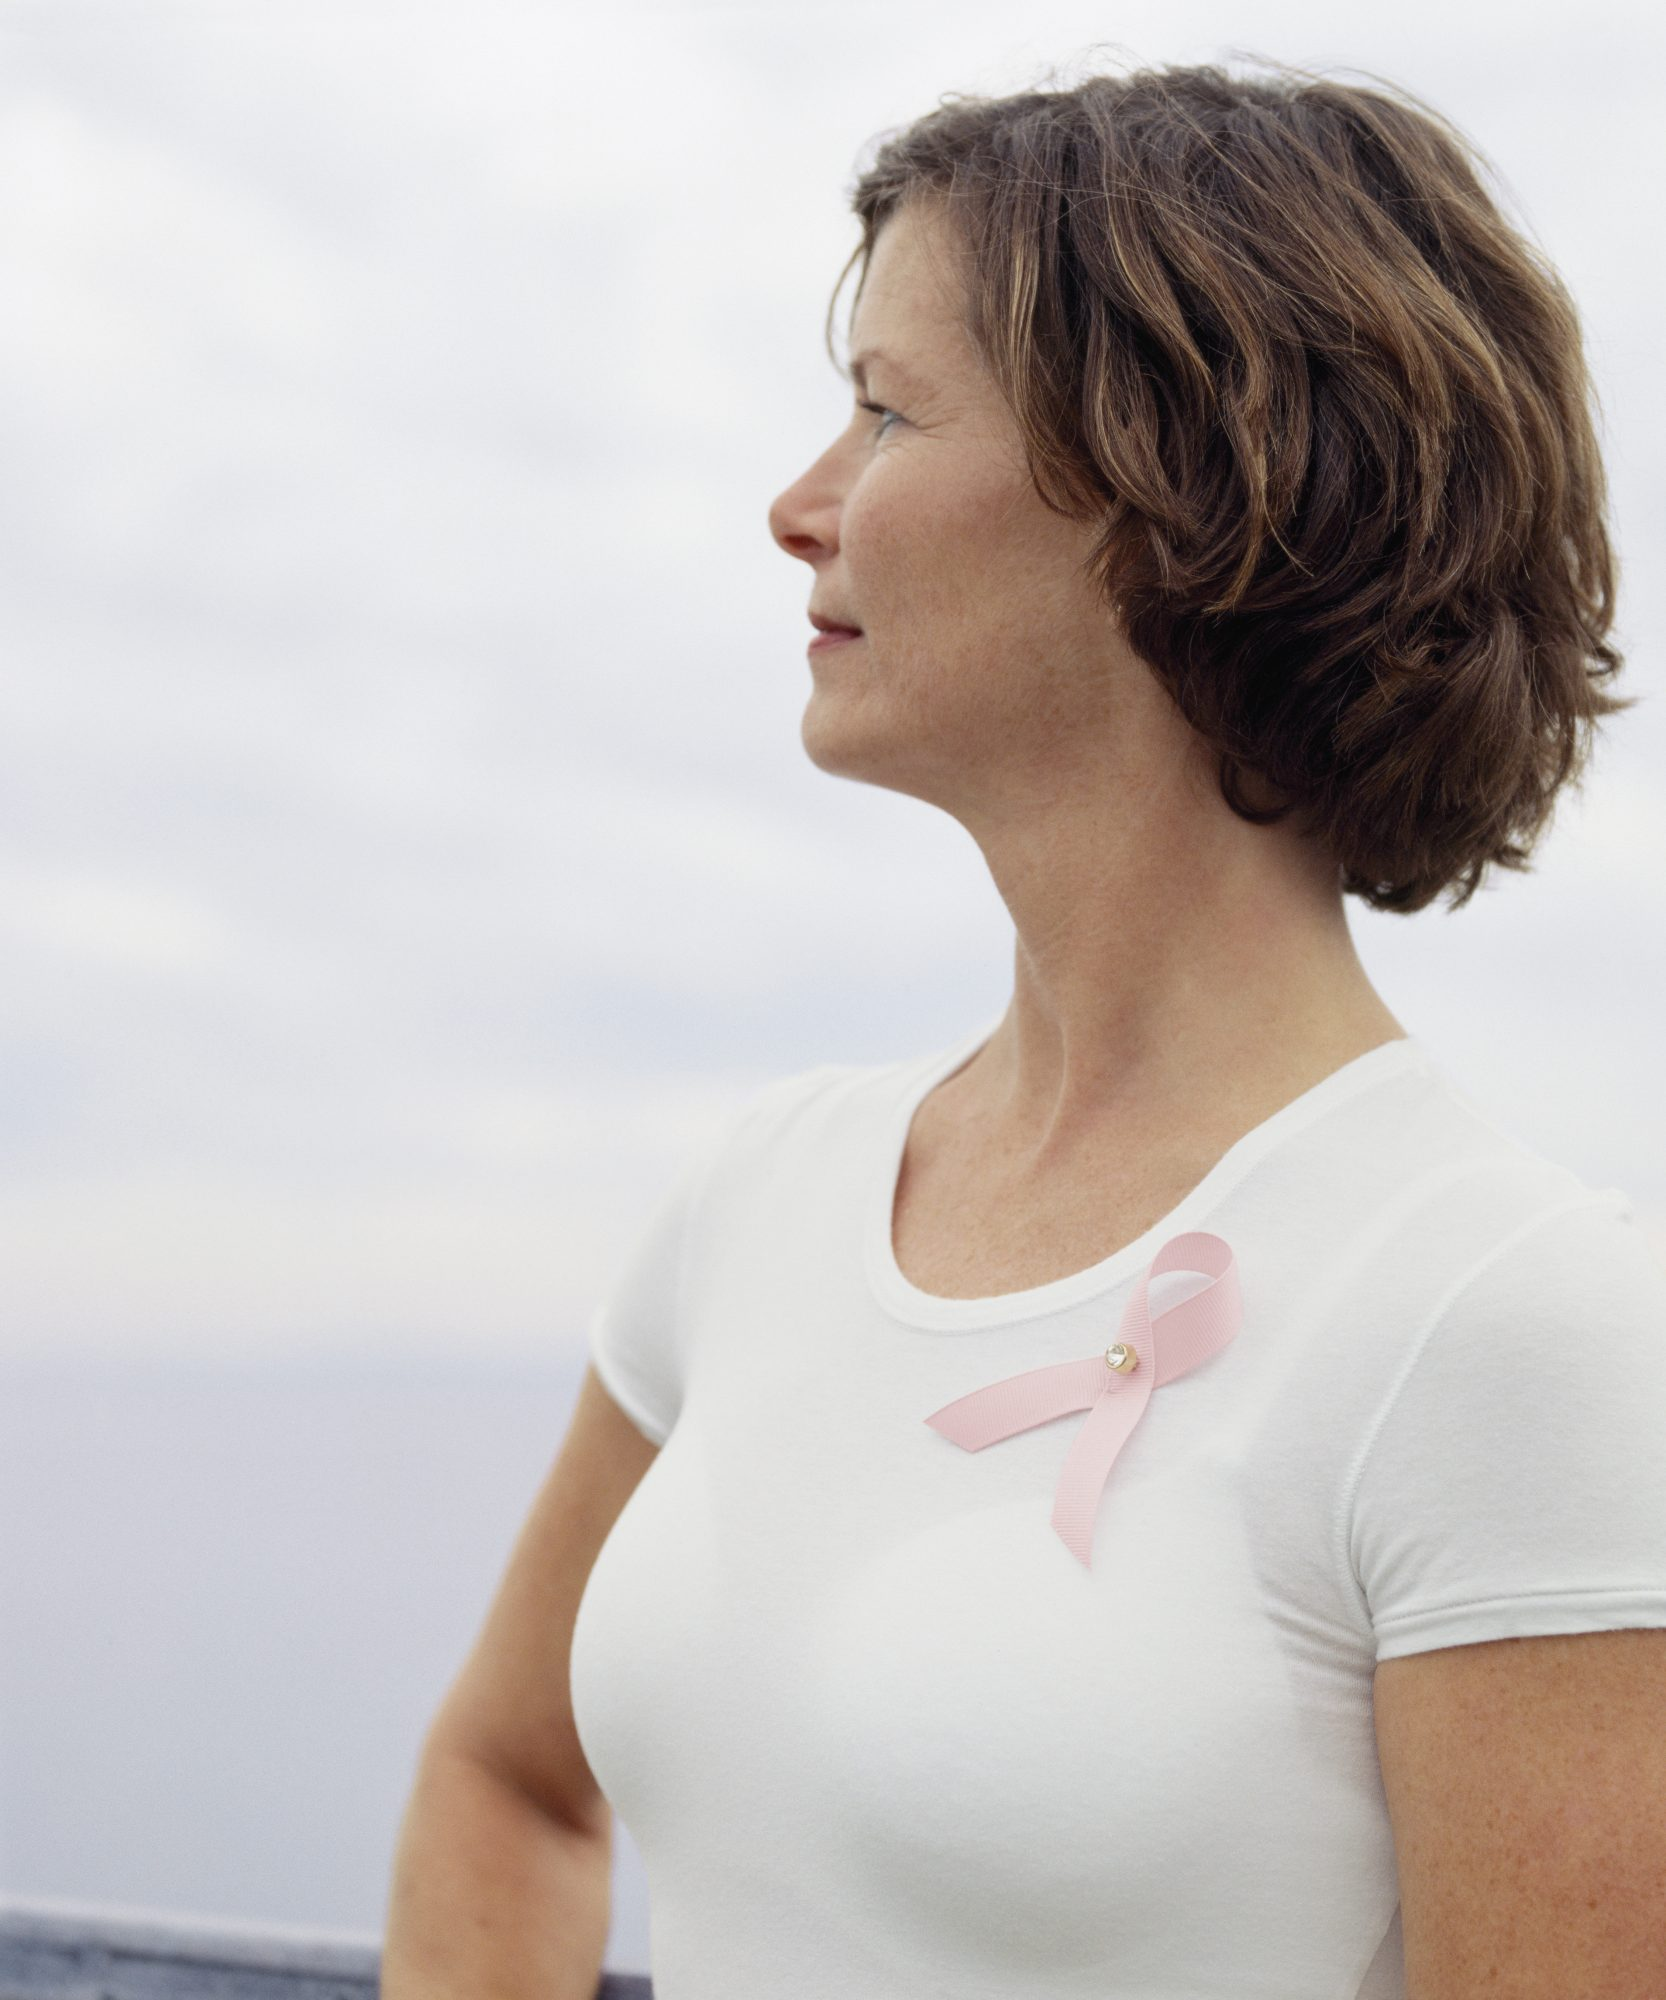 Myth: After heart disease, breast cancer is the nation's leading killer of women.